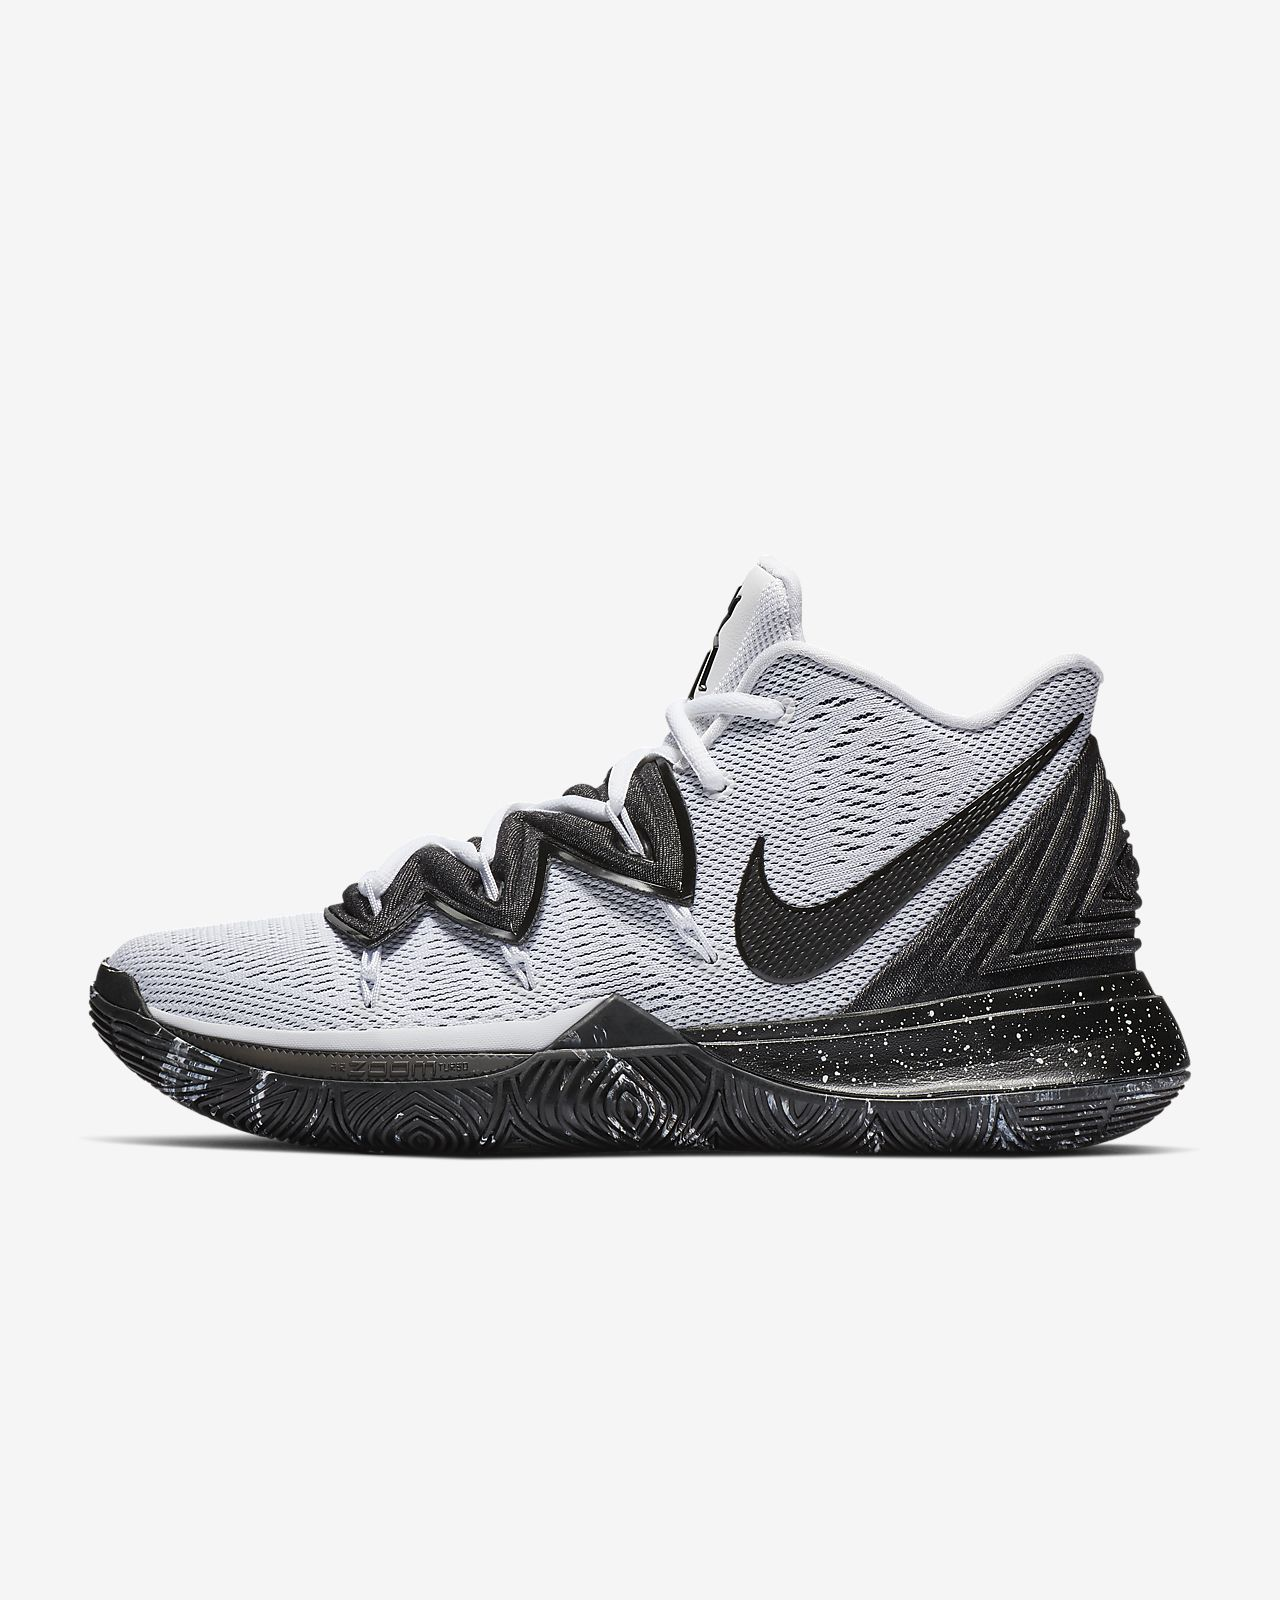 a9bec4ee242 Low Resolution Kyrie 5 Zapatillas Kyrie 5 Zapatillas